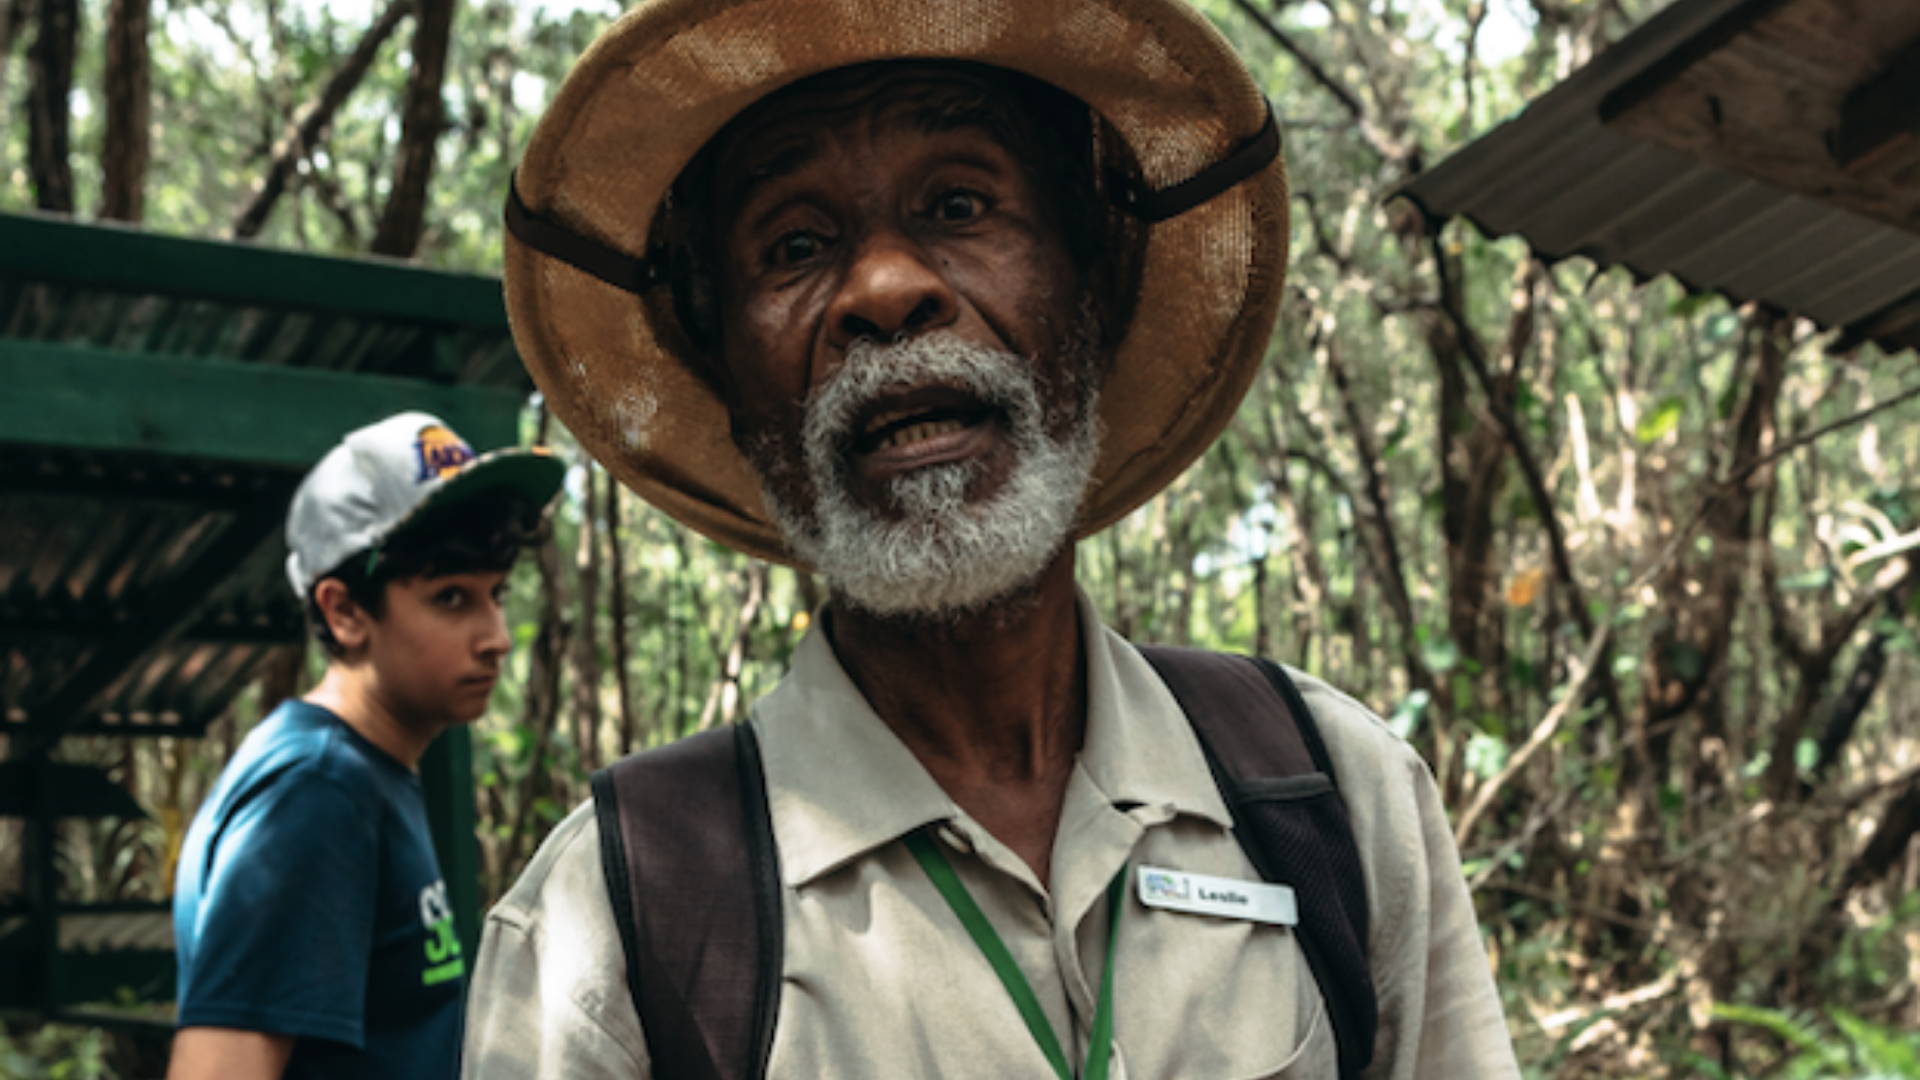 An older black park ranger as a local guide